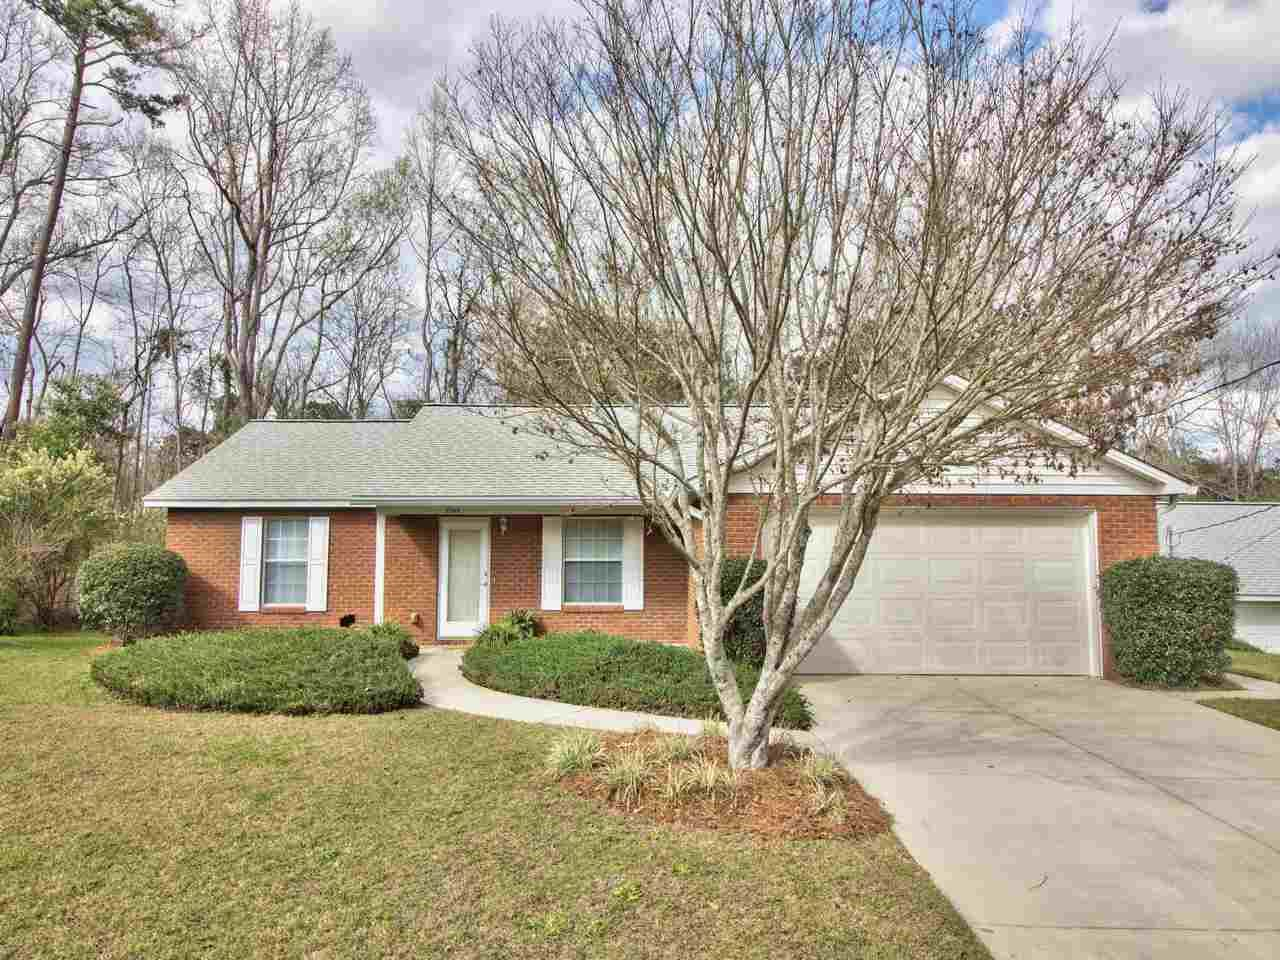 Photo of 2764 N Whitney Drive, TALLAHASSEE, FL 32309 (MLS # 316049)